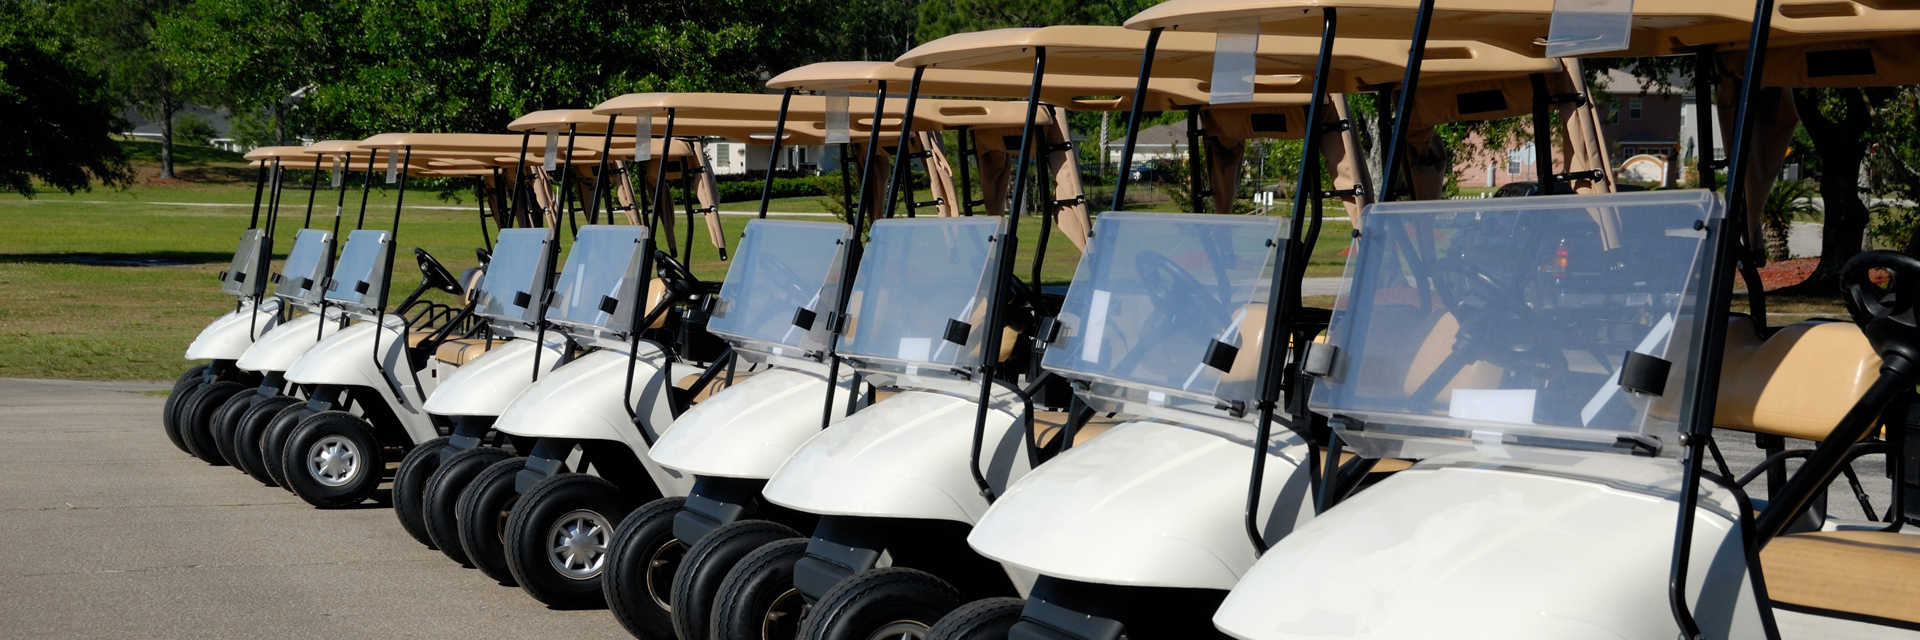 """<a href=""""/membership-giving/donate-support/golf-tournament""""                                     target="""""""">                                                                 <span class=""""slider_title"""">                                     13th Annual BIJC Golf Tournament                                </span>                                                                 </a>                                                                                                                                                                                       <span class=""""slider_description"""">at Foxtail Golf Club, Rohnert Park.</span>                                                                                     <a href=""""/membership-giving/donate-support/golf-tournament"""" class=""""slider_link""""                             target="""""""">                             Read More                            </a>"""